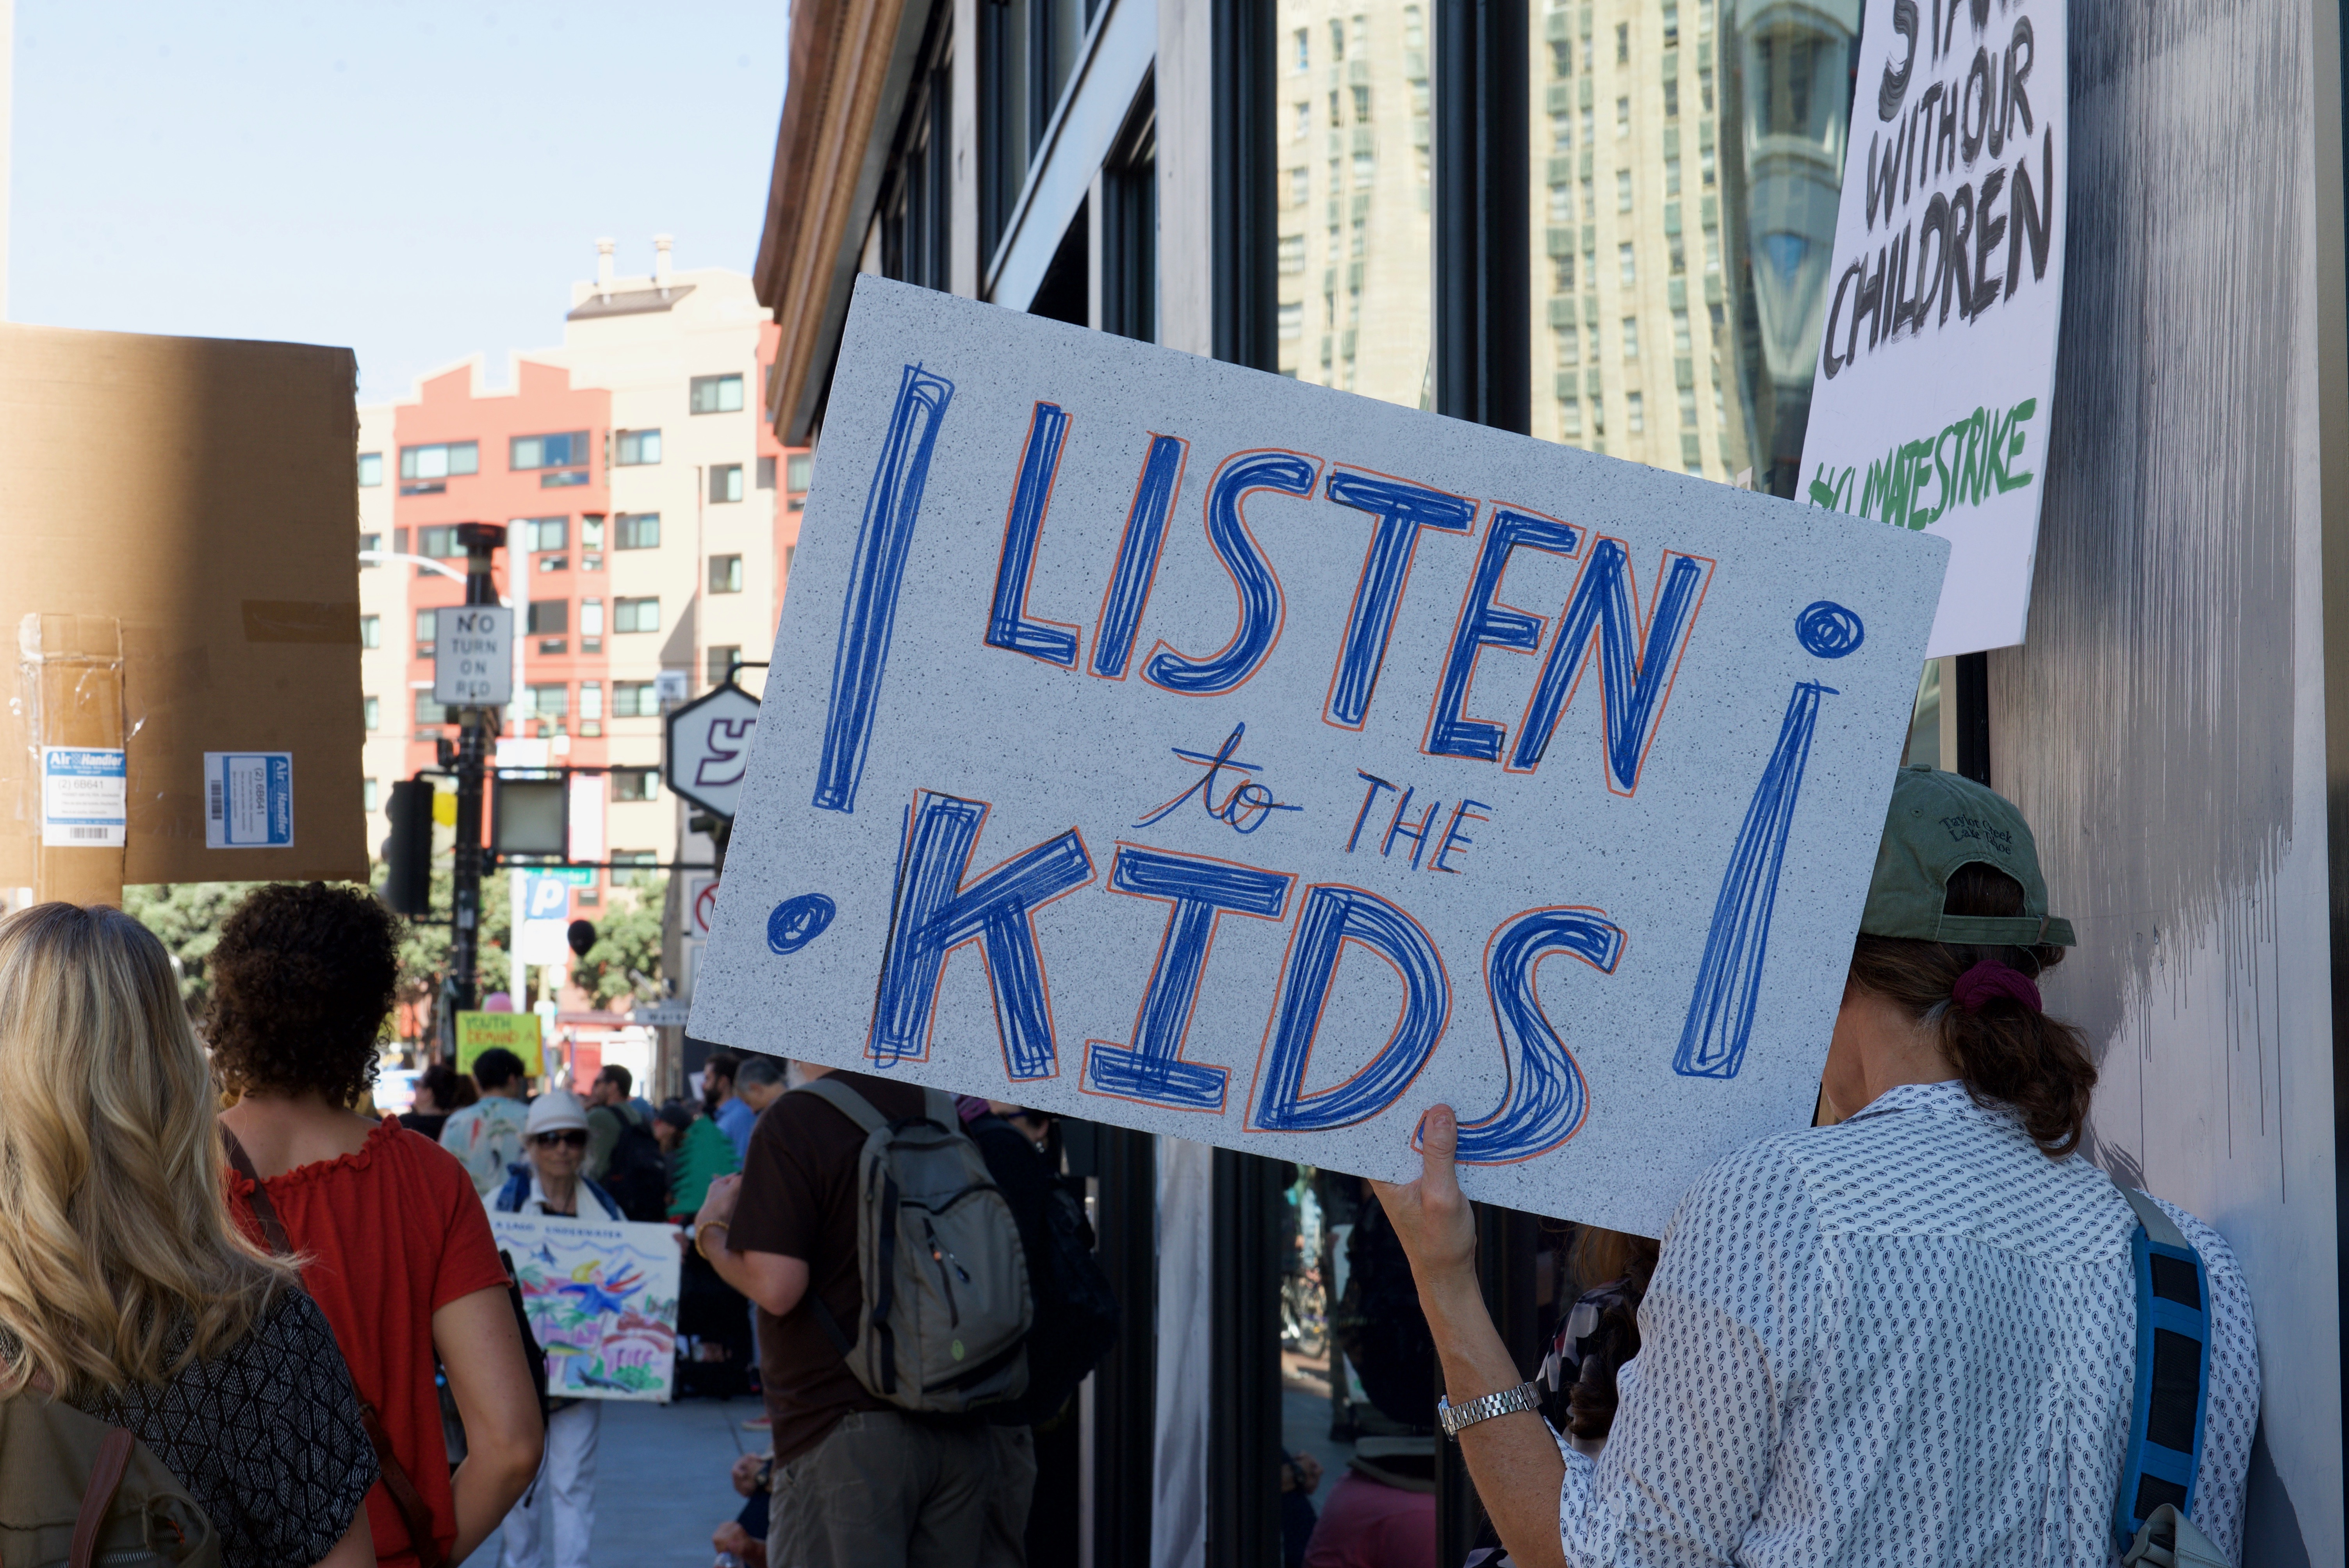 Listen to the kids sign